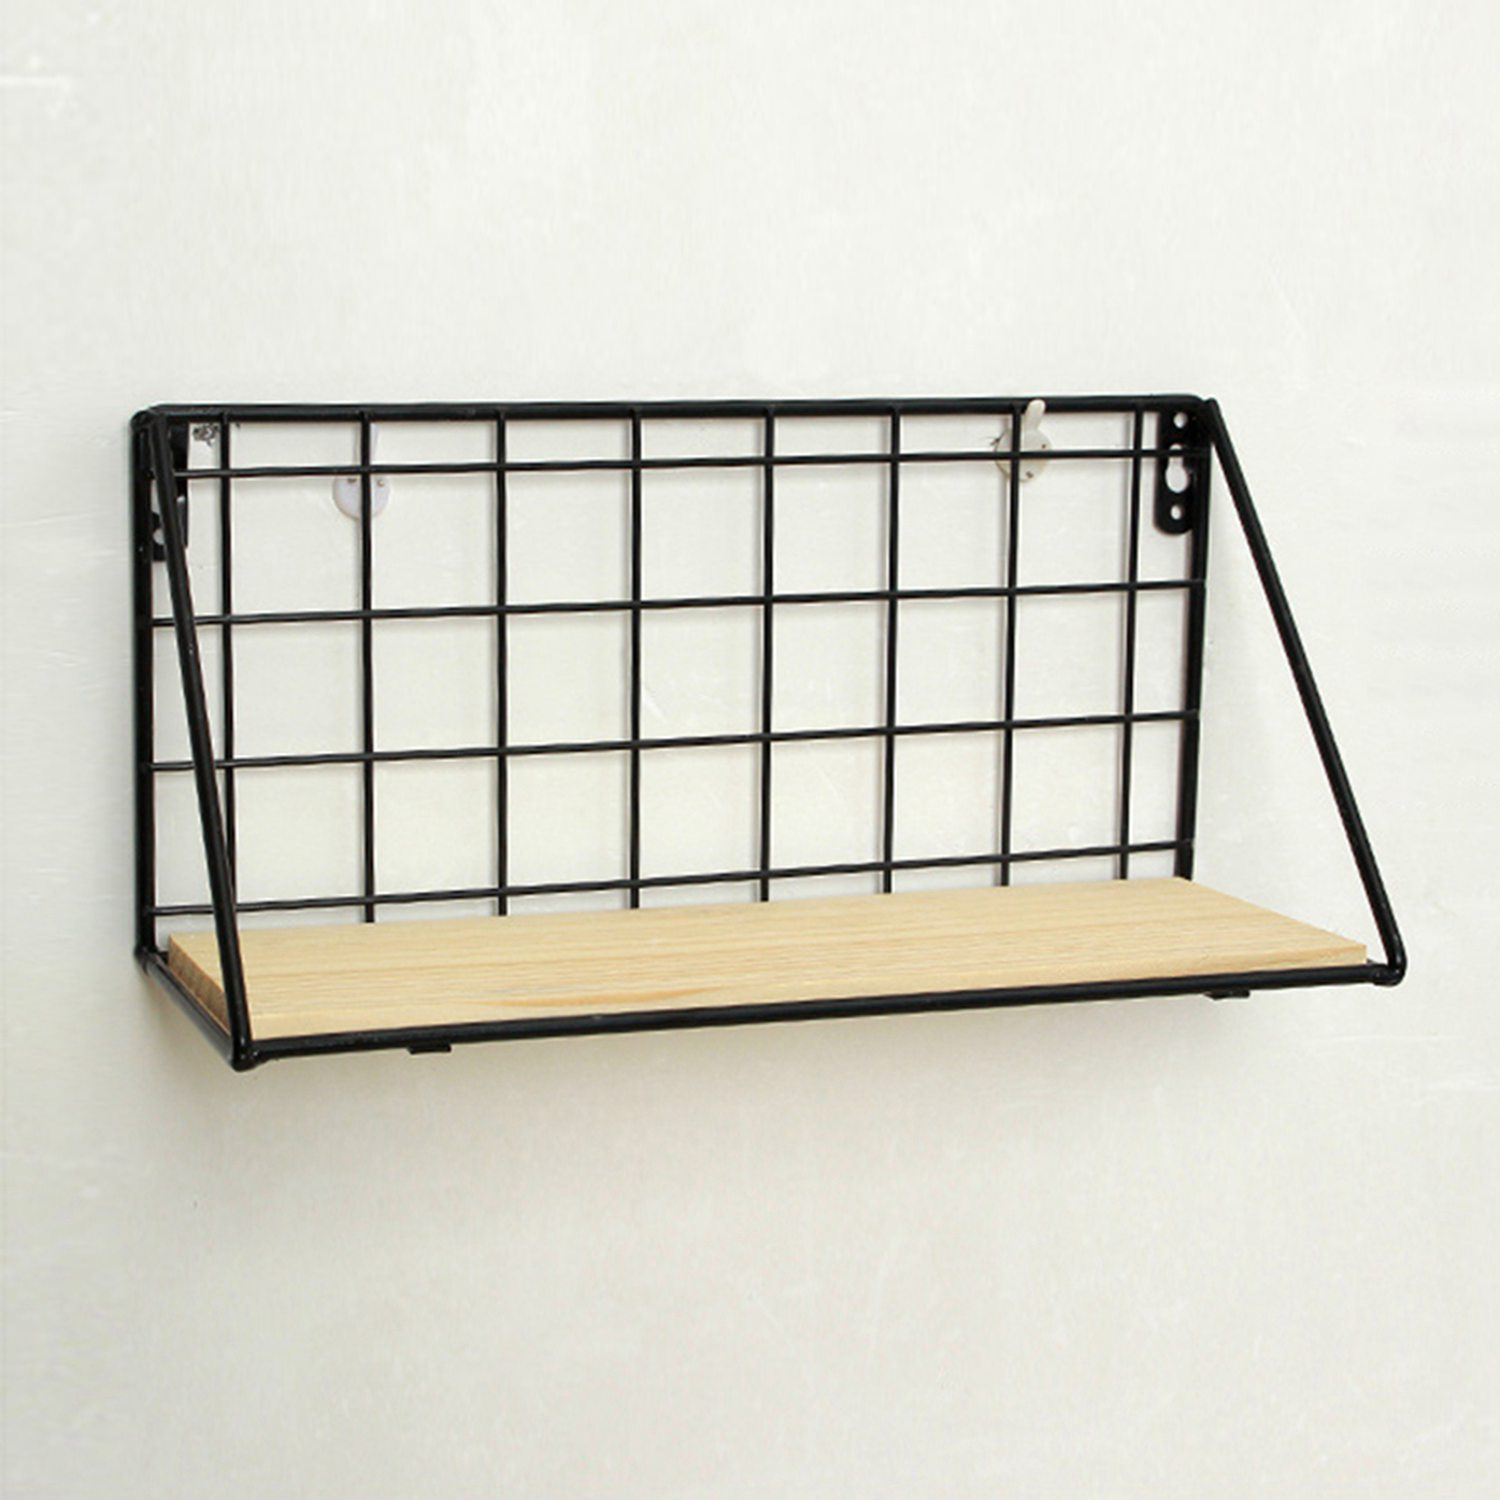 Wooden Iron Bathroom Shelves Storage Holders Home Storage Shelf Wall ...